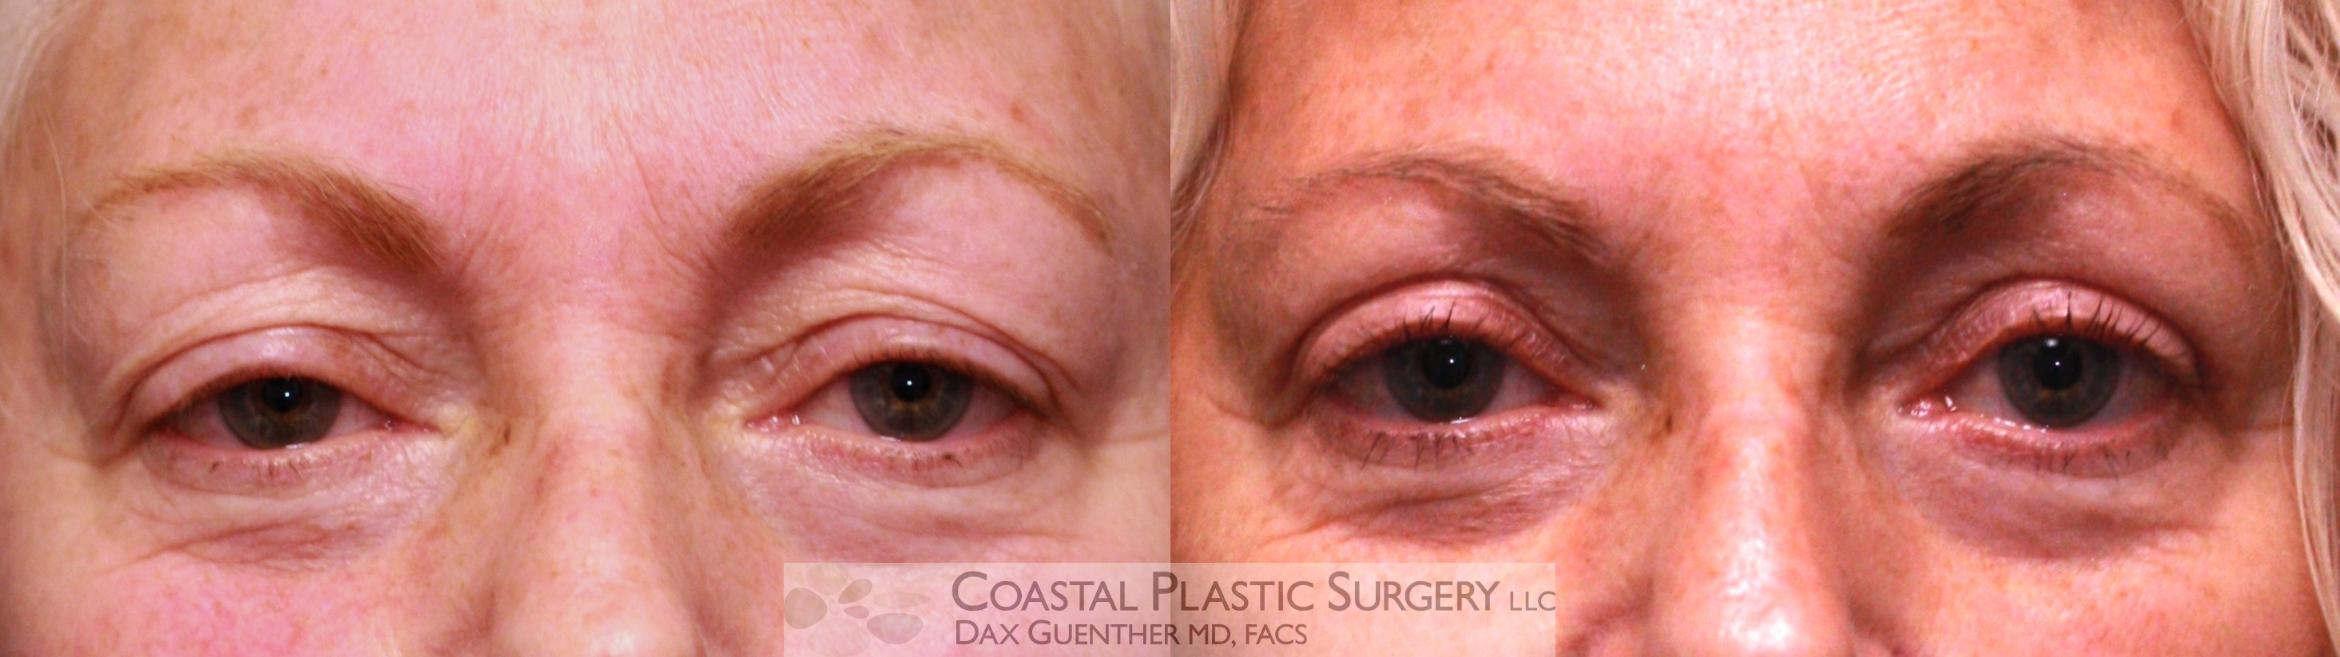 Eyelid Surgery (Blepharoplasty) Before & After Photo | Hingham, MA | Dax Guenther, MD: Coastal Plastic Surgery